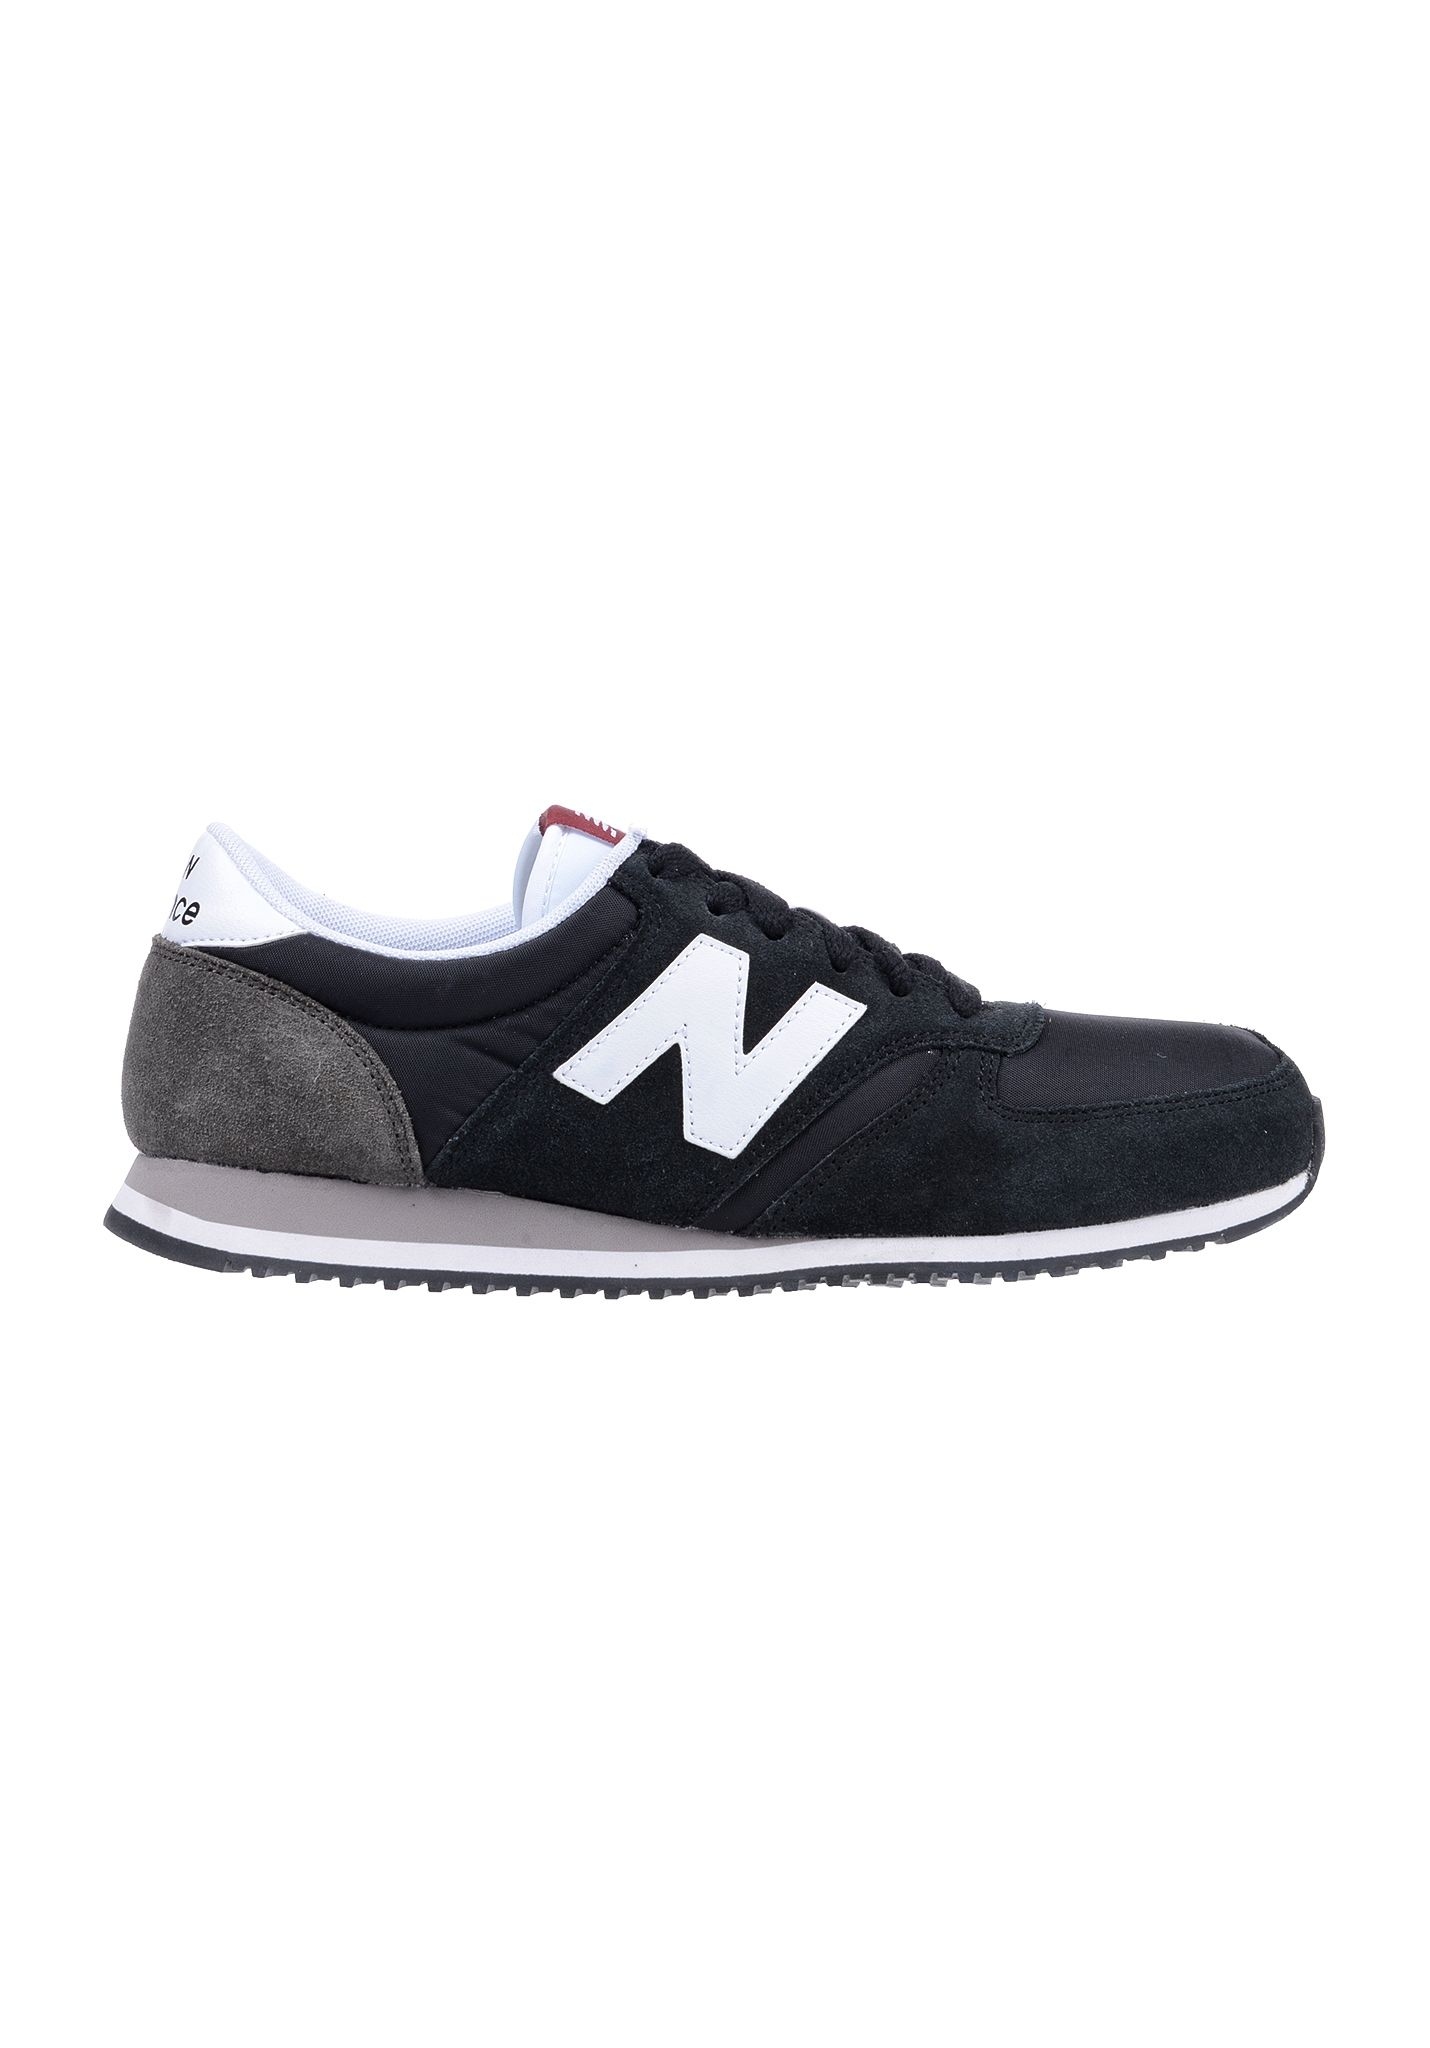 ml565 new balance Paris